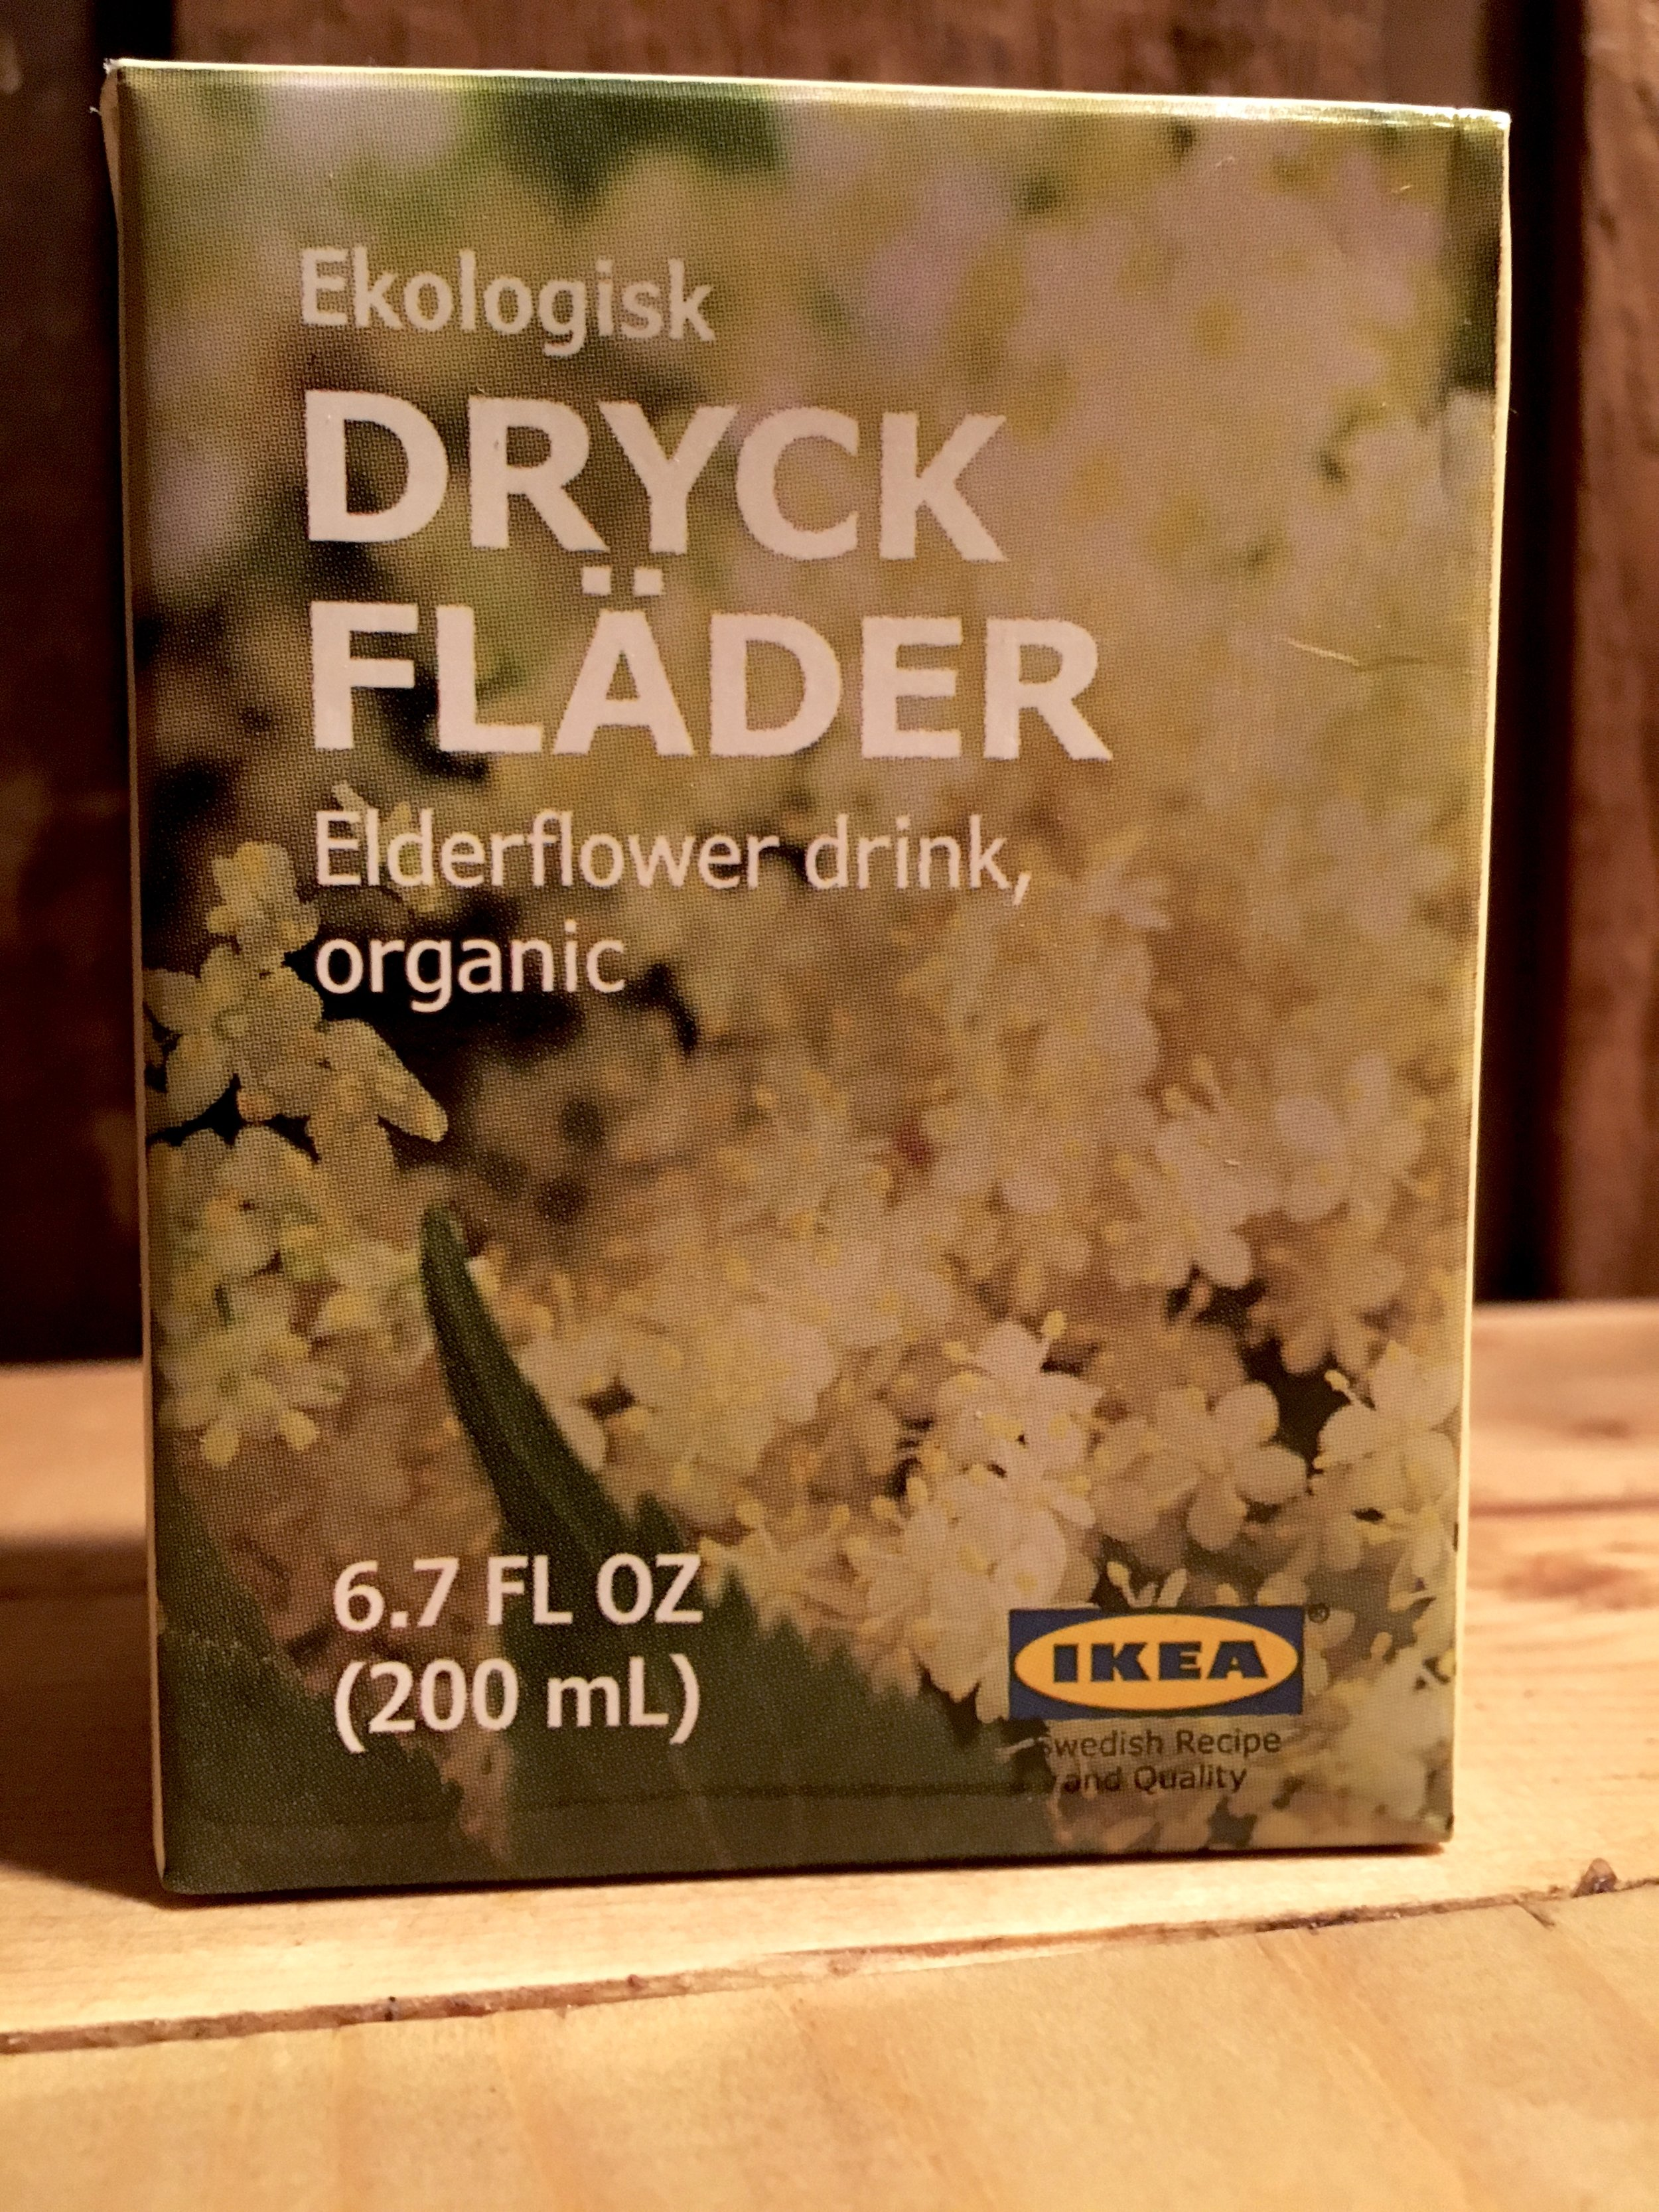 The Norwegians are onto something… A dear friend bought me a gift from Ikea…nothing other than an Elderflower juice box! By drinking elderflower tea or perhaps concentrate, it will help your overall health. Elderflower has many antioxidants that increase eye health, respiratory health and cardiovascular health.